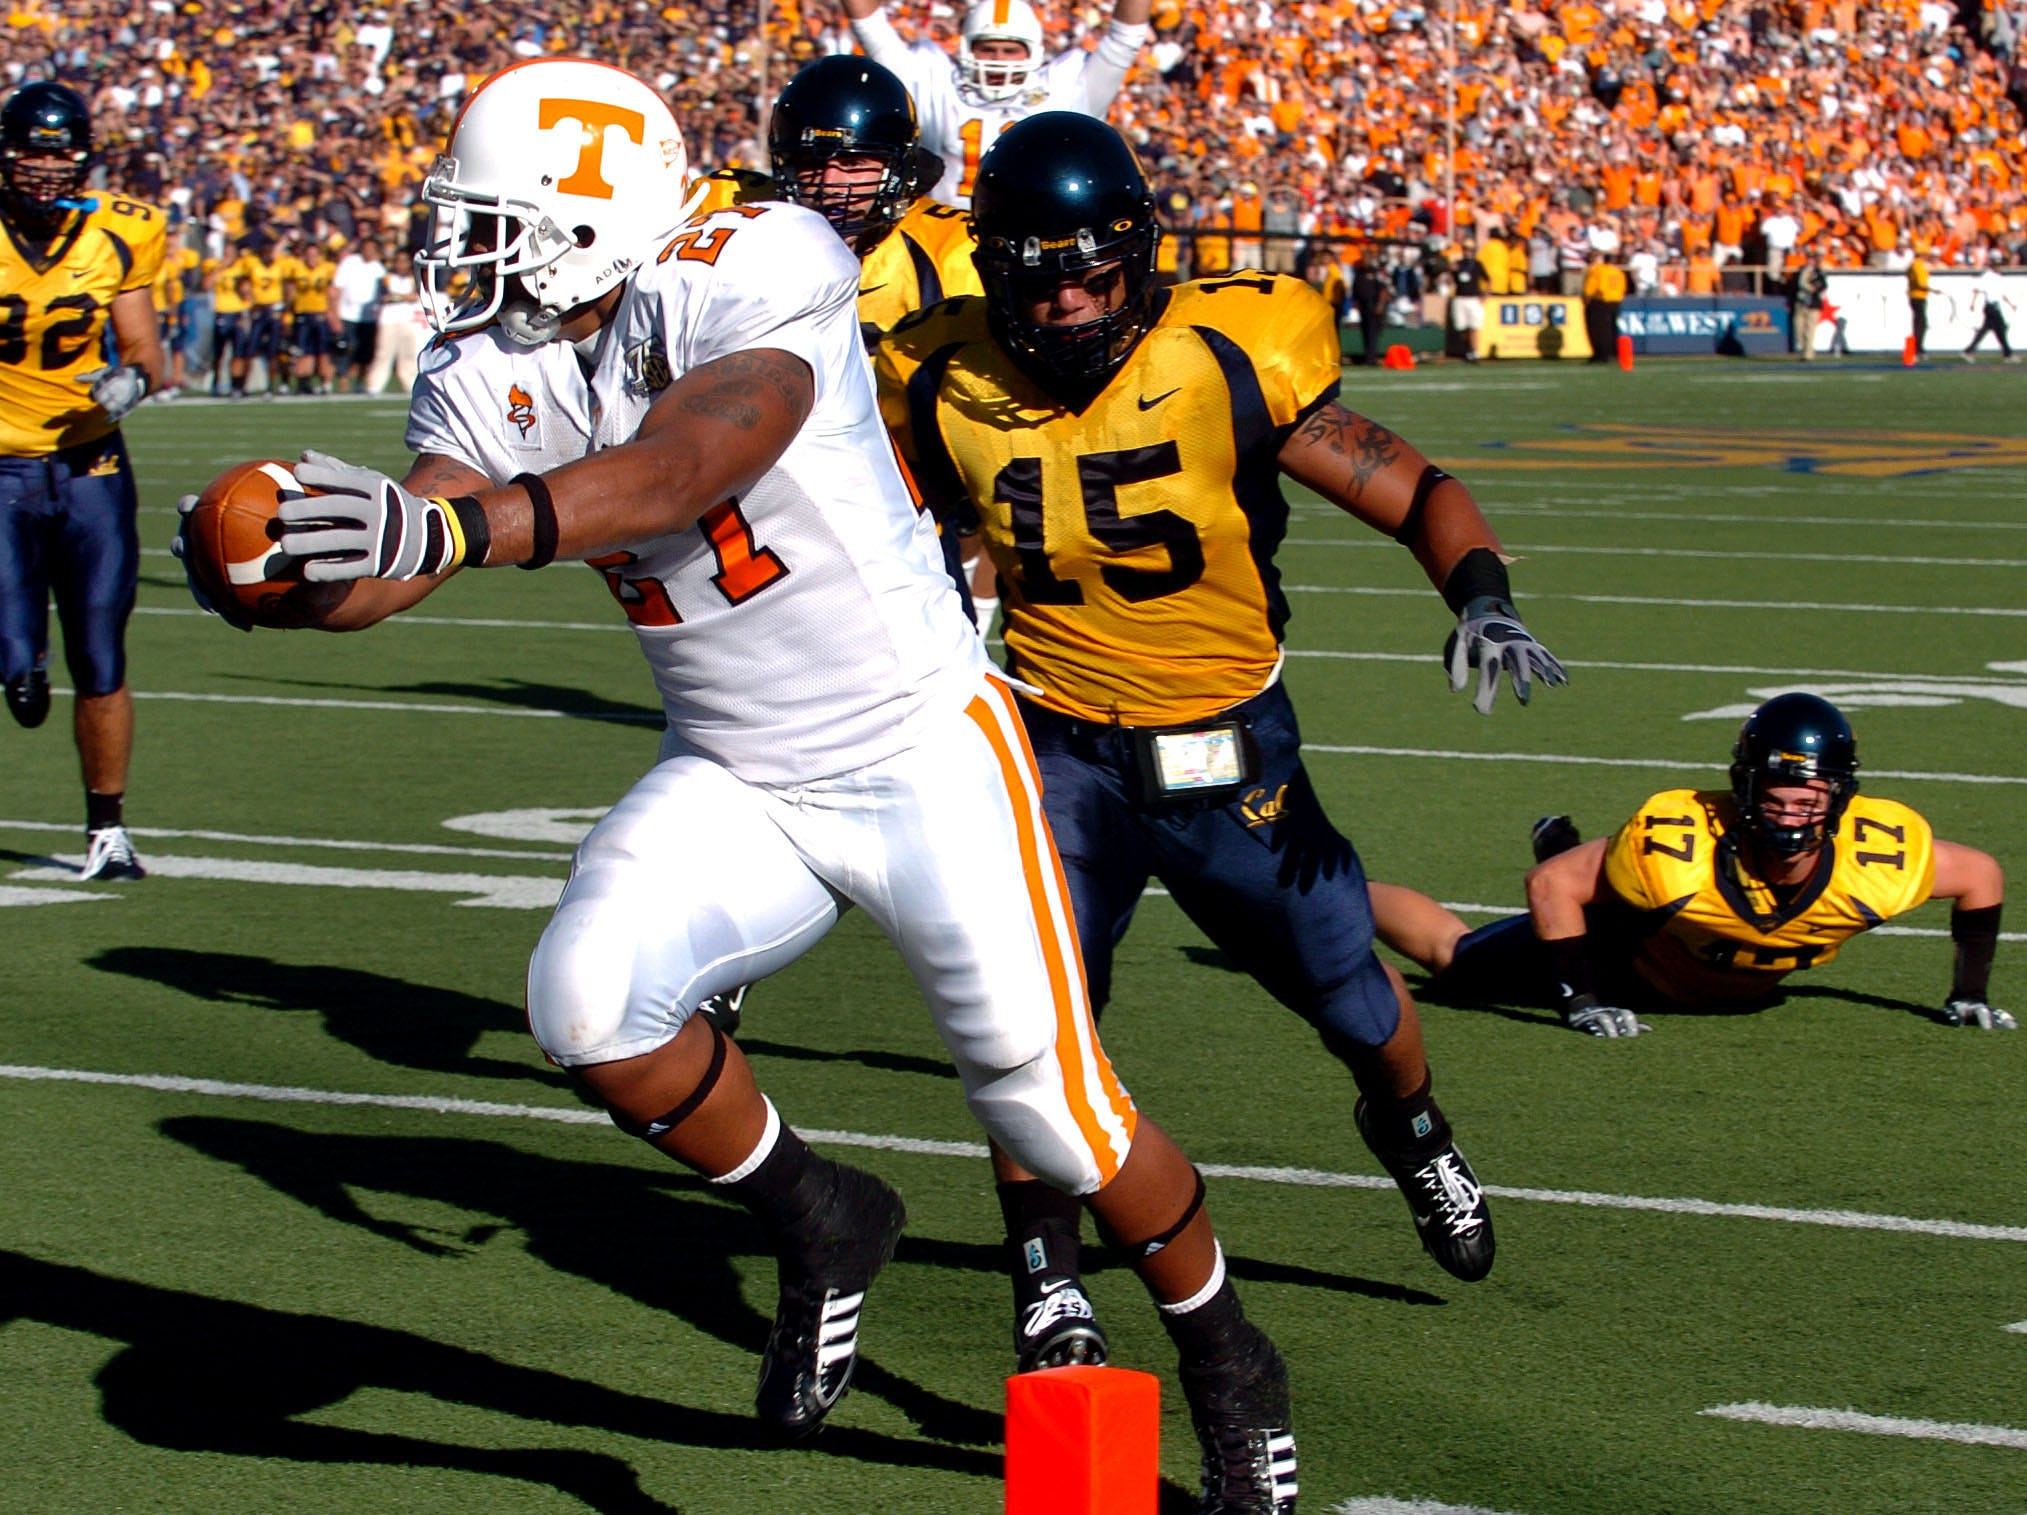 Tennessee tailback Arian Foster scores the Vols' first touchdown on a 12-yard pass from Erik Ainge on Saturday in Berkeley, Calif. Cal defenders Anthony Felder (15) and Chris Conte (17) were beaten on the play. The Golden Bears won 45-31, revenging last year's lopsided loss in Knoxville.